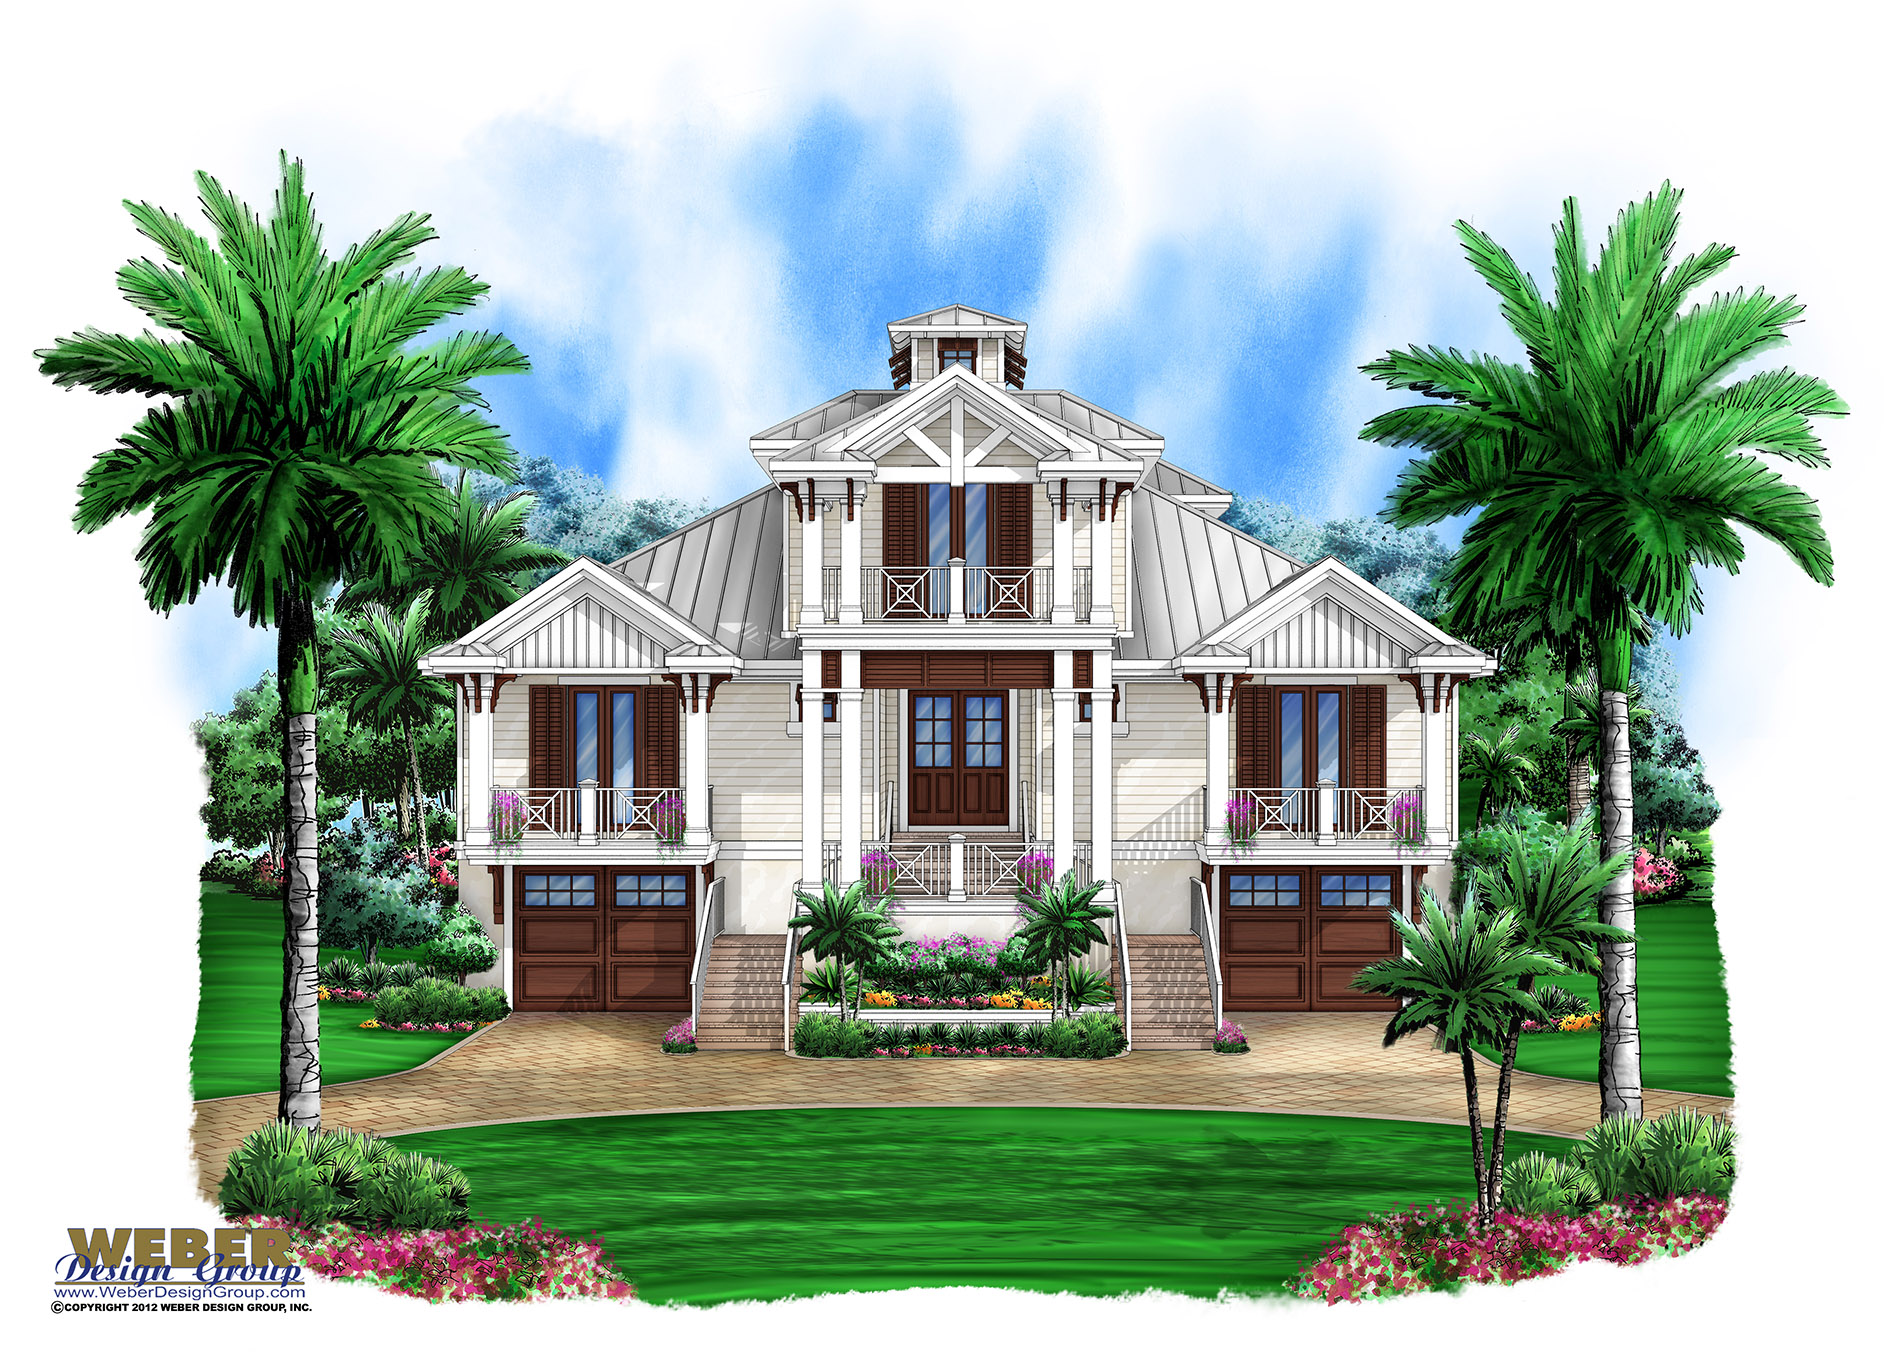 3 Story Old Florida House Plan, Beach Outdoor Living, Lanai, Pool ...